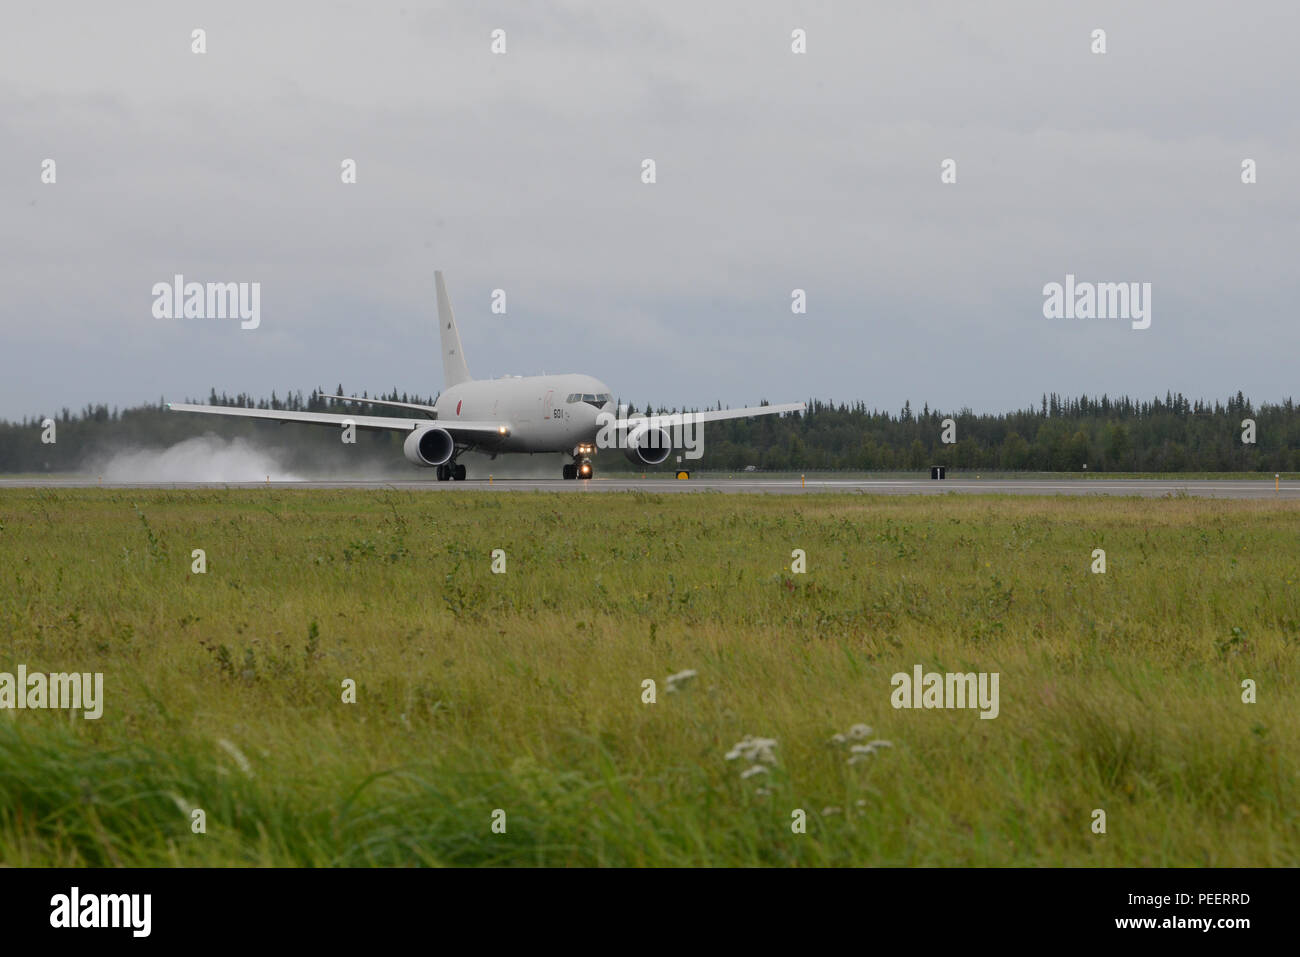 A Japanese Air Self-Defense Force KC-767 tanker takes off from Eielson Air Force Base, Alaska, Aug. 10, 2015, during Red Flag-Alaska (RF-A) 15-3. RF-A is a series of Pacific Air Forces commander-directed field training exercises for U.S. and partner nation forces, providing combined offensive counter-air, interdiction, close air support and large force employment training in a simulated combat environment. (U.S. Air Force photo by Senior Airman Ashley Nicole Taylor/Released) Stock Photo